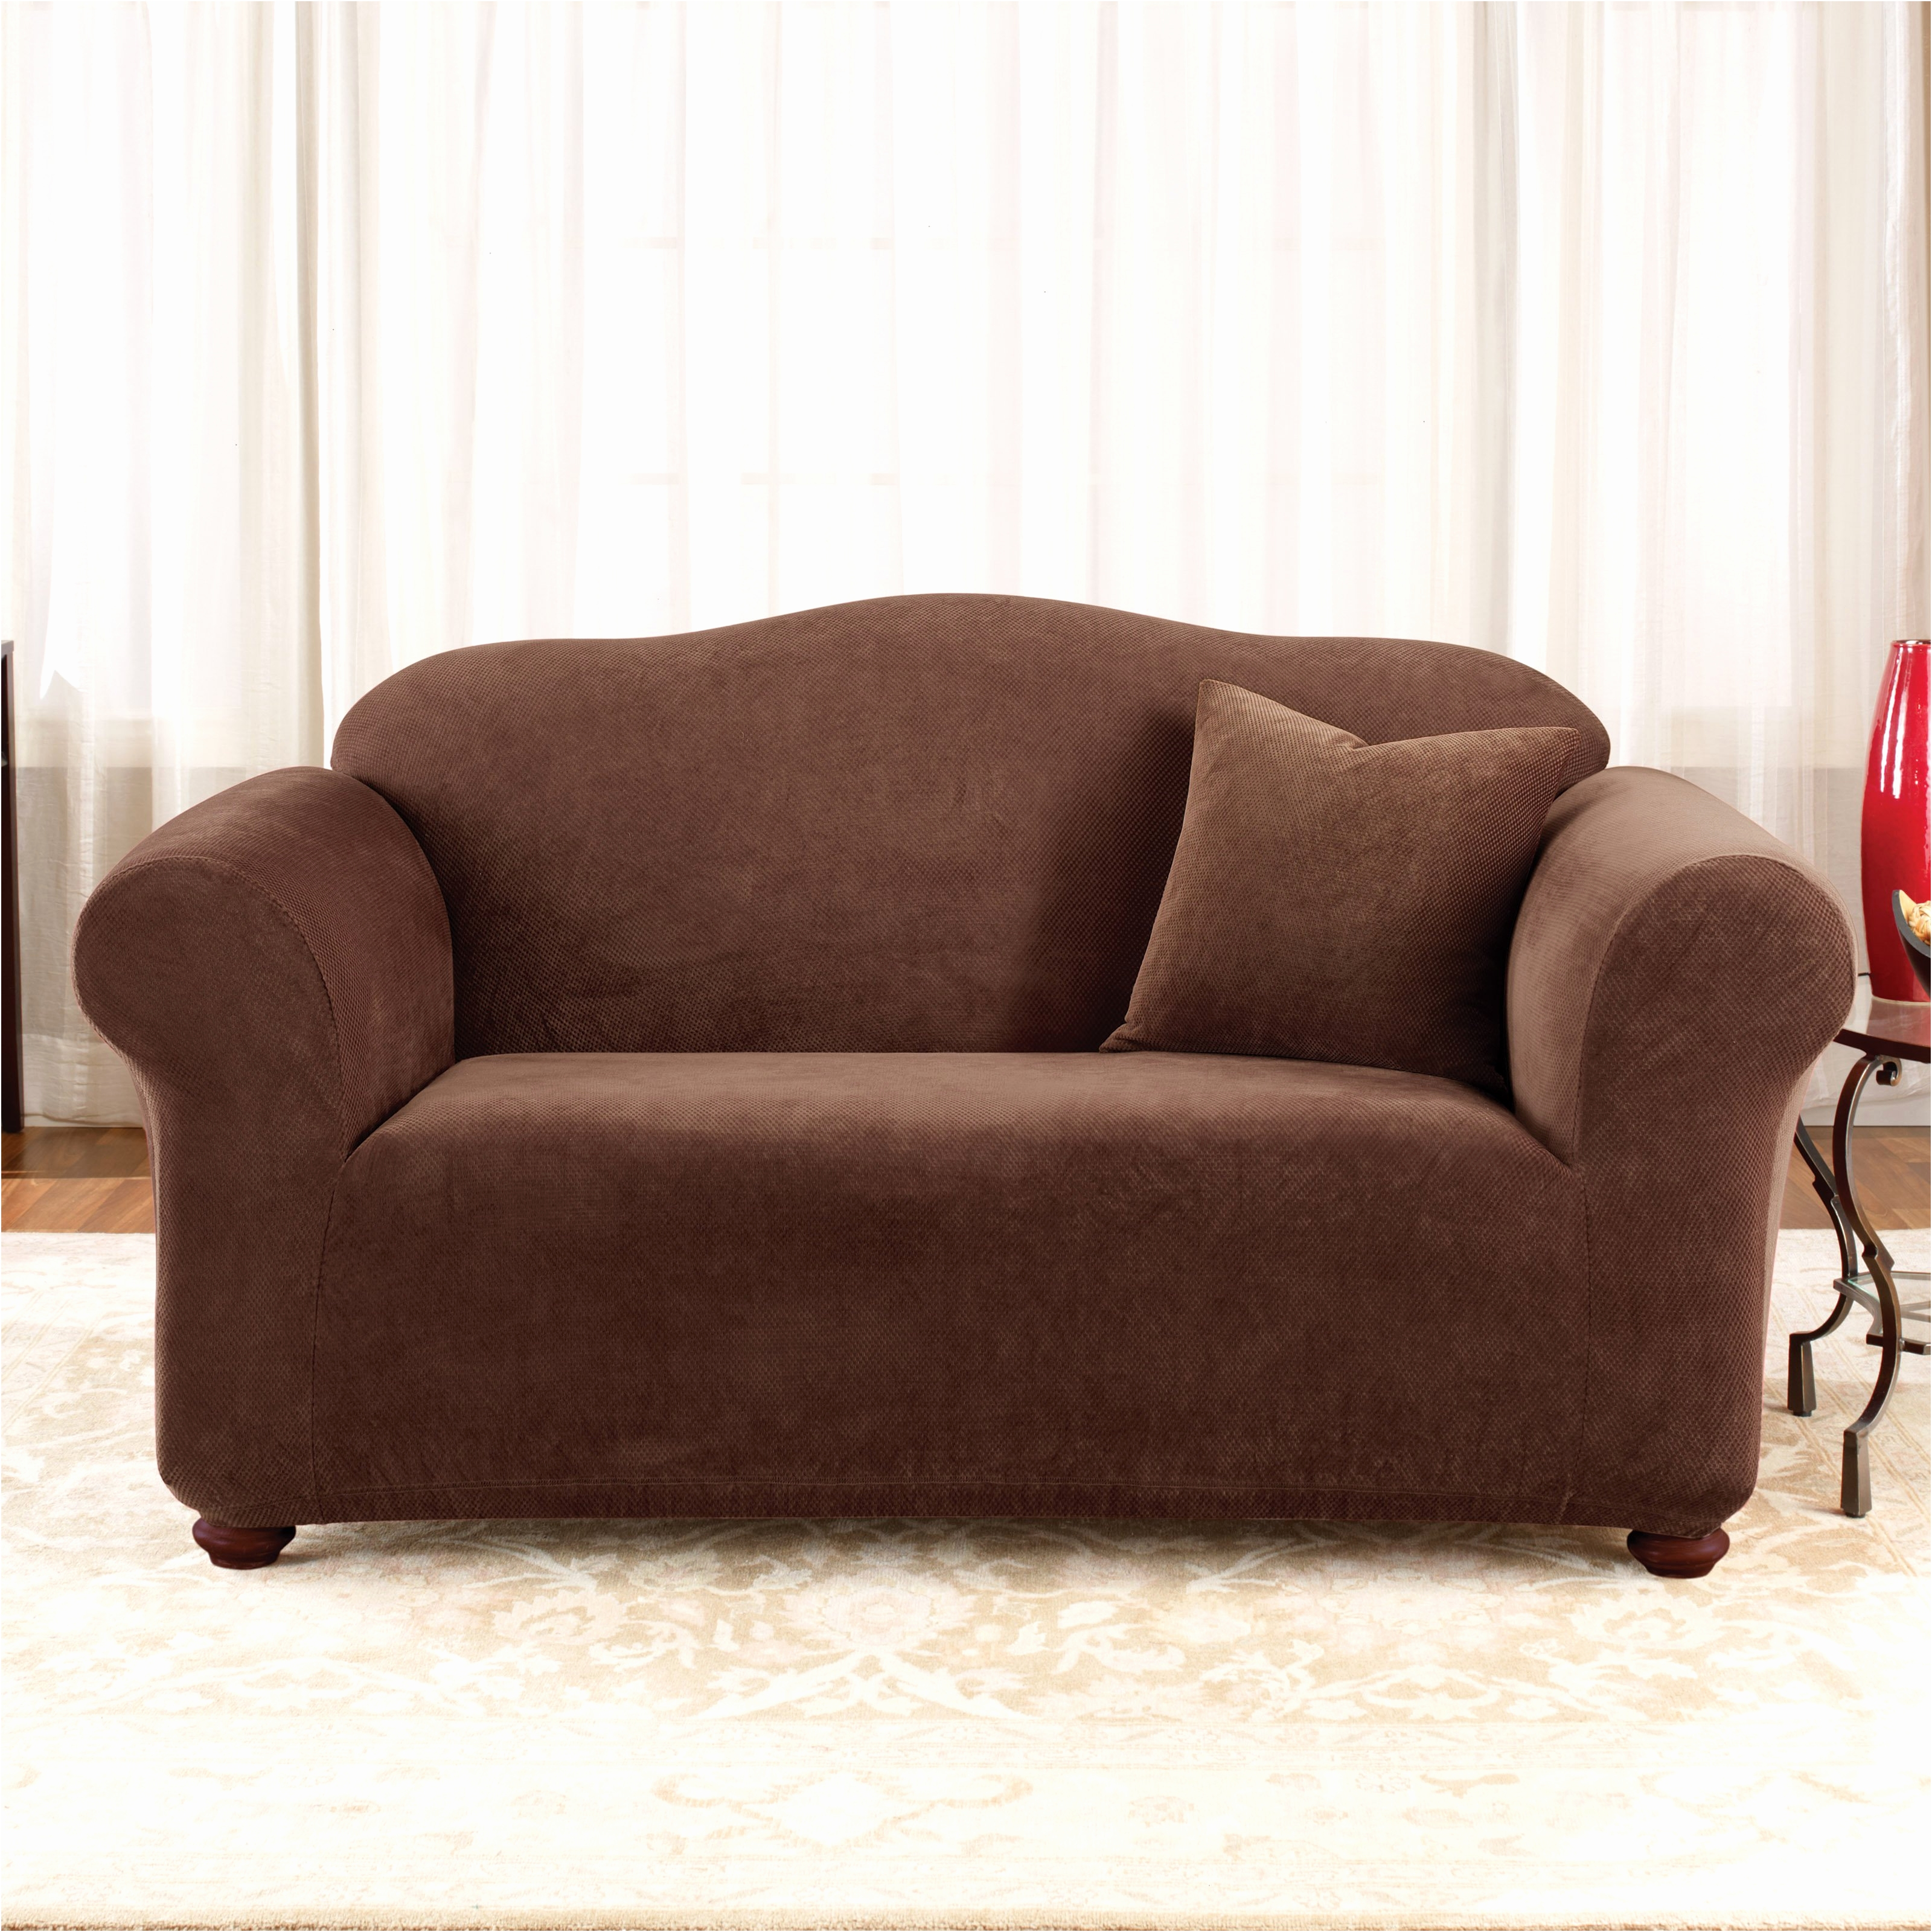 best of purple sectional sofa online-Cool Purple Sectional sofa Photo